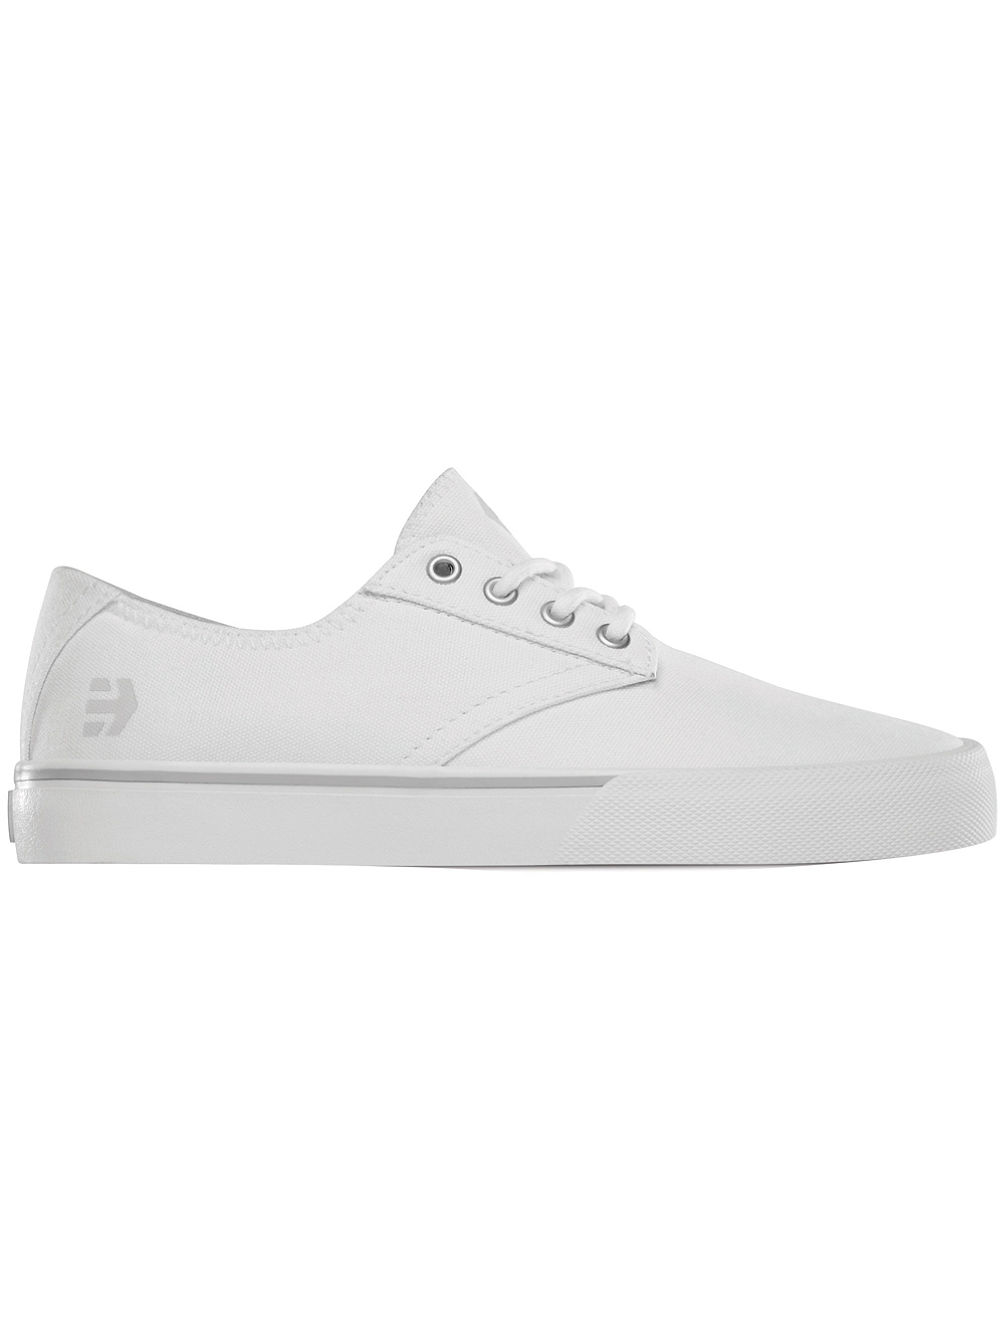 Jameson Vulc LS Sneakers Frauen